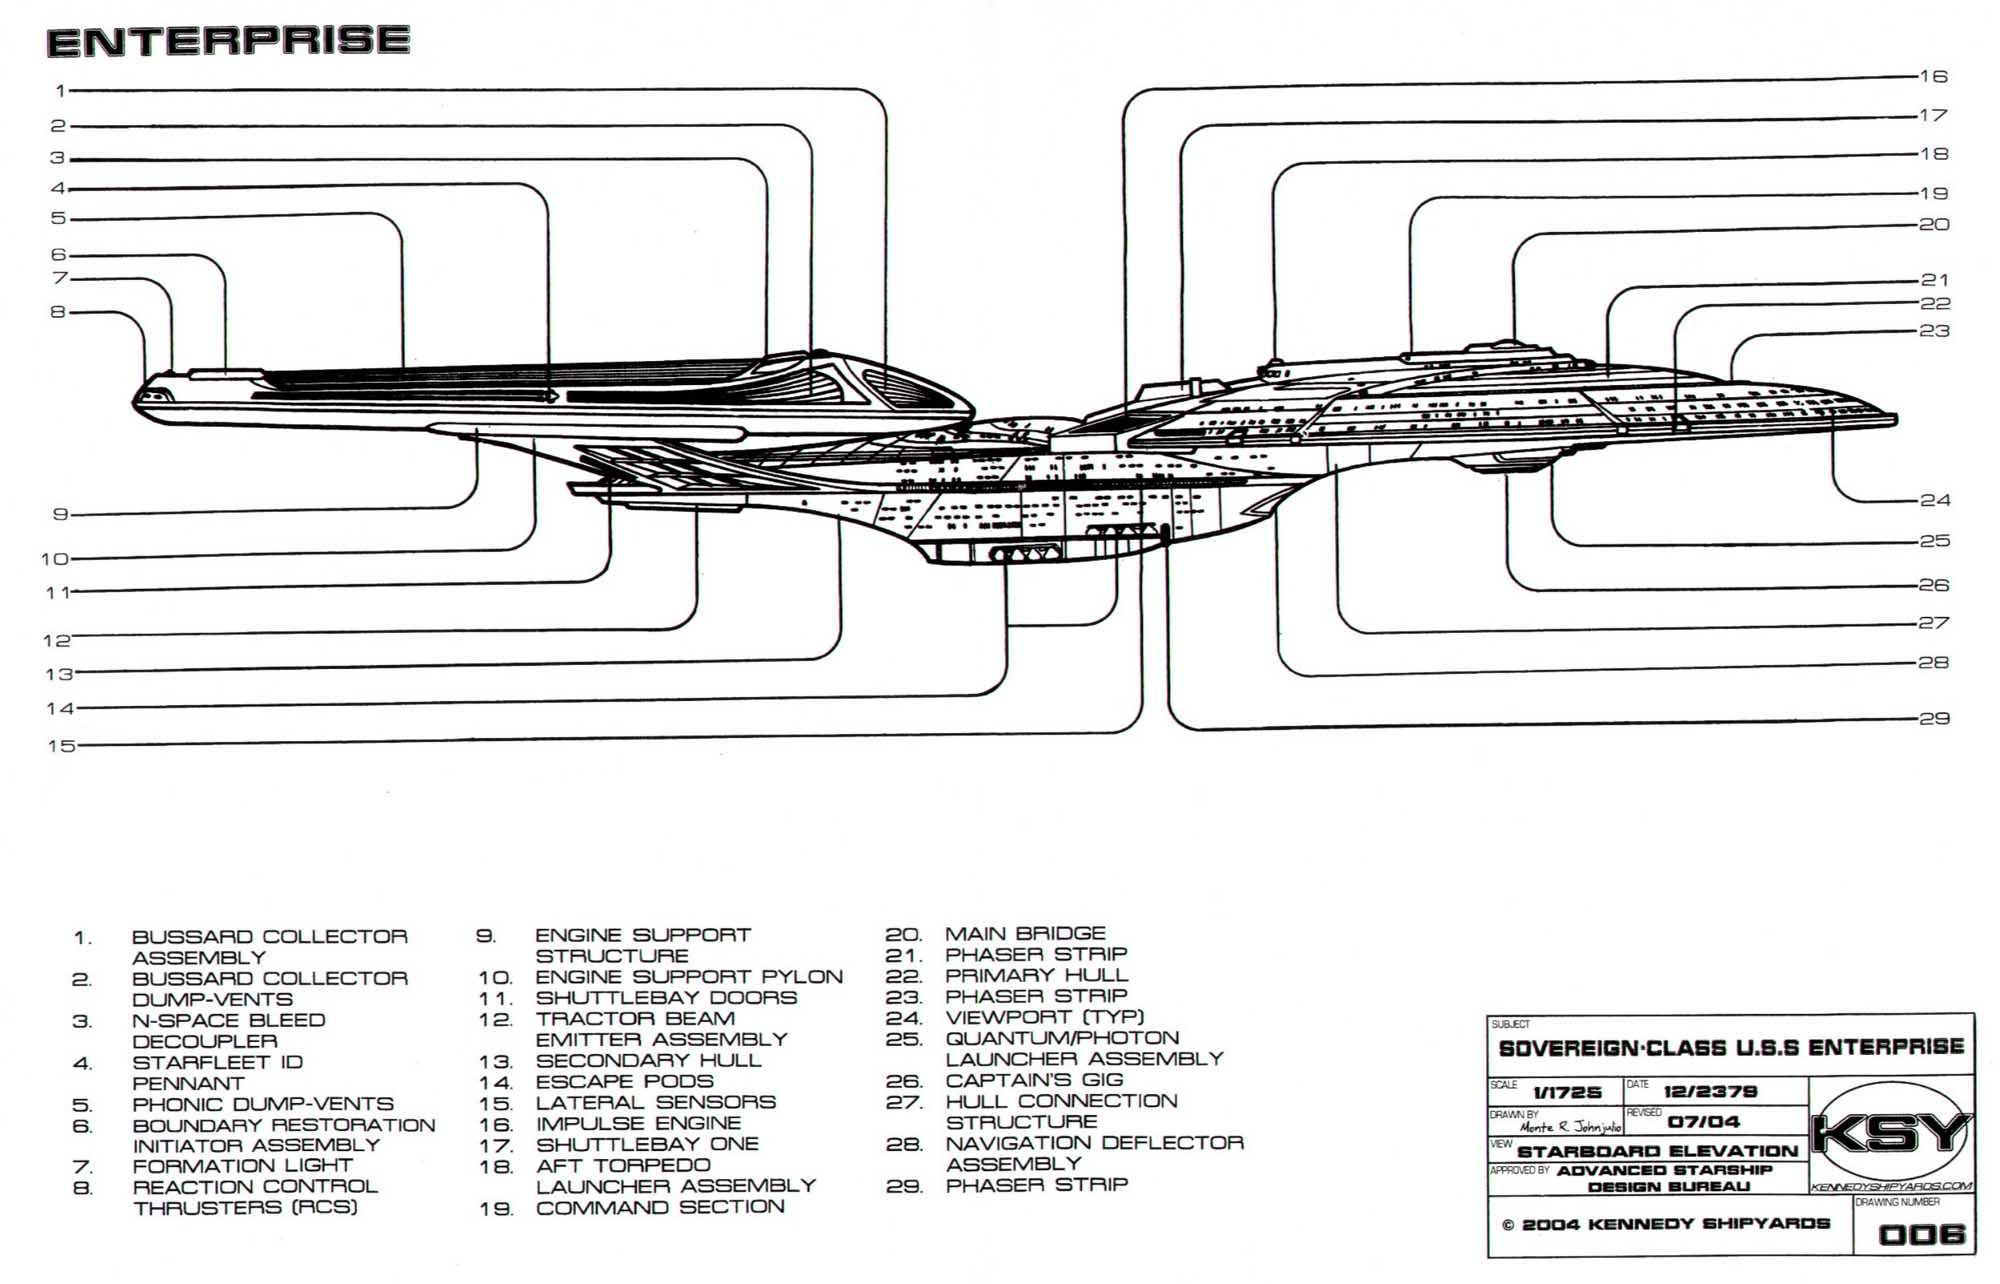 Sovereign Cl Starship Schematics - Enthusiast Wiring Diagrams • on spaceship graphics, spaceship technology, spaceship ideas, spaceship symbols, spaceship maps, spaceship designs, spaceship materials, spaceship diagrams,